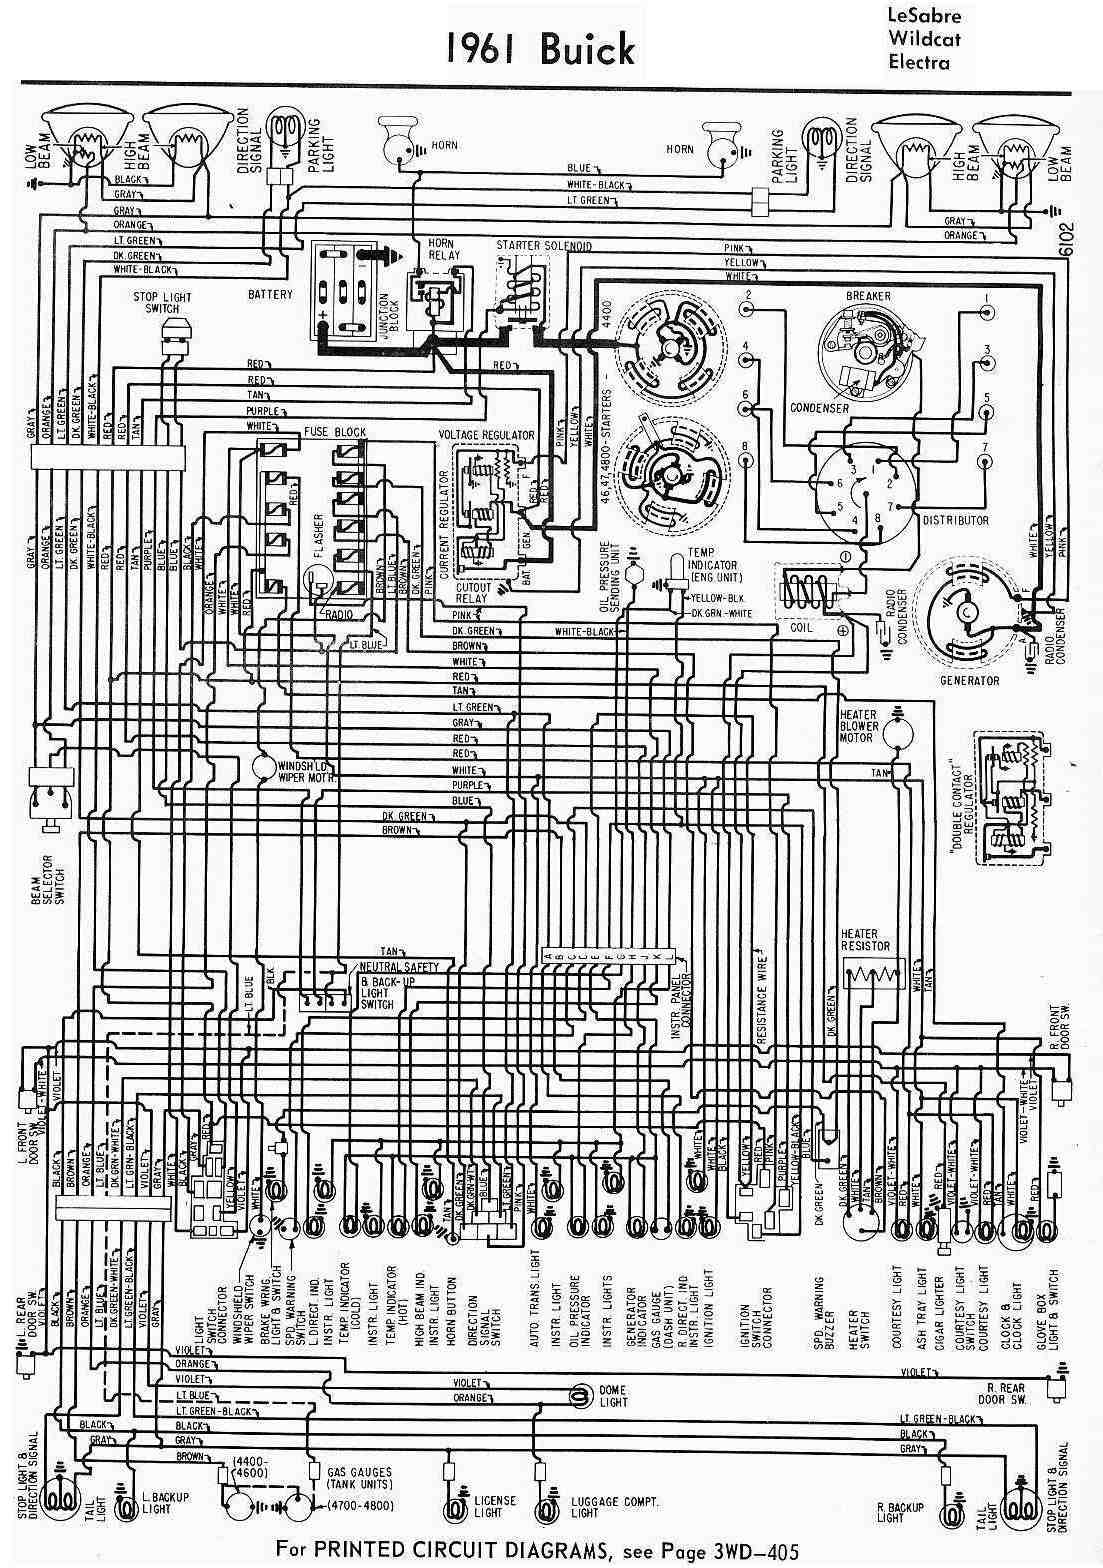 hight resolution of 2004 buick lesabre wiring diagram advance wiring diagrambuick lesabre wiring diagram wiring diagram inside 2004 buick